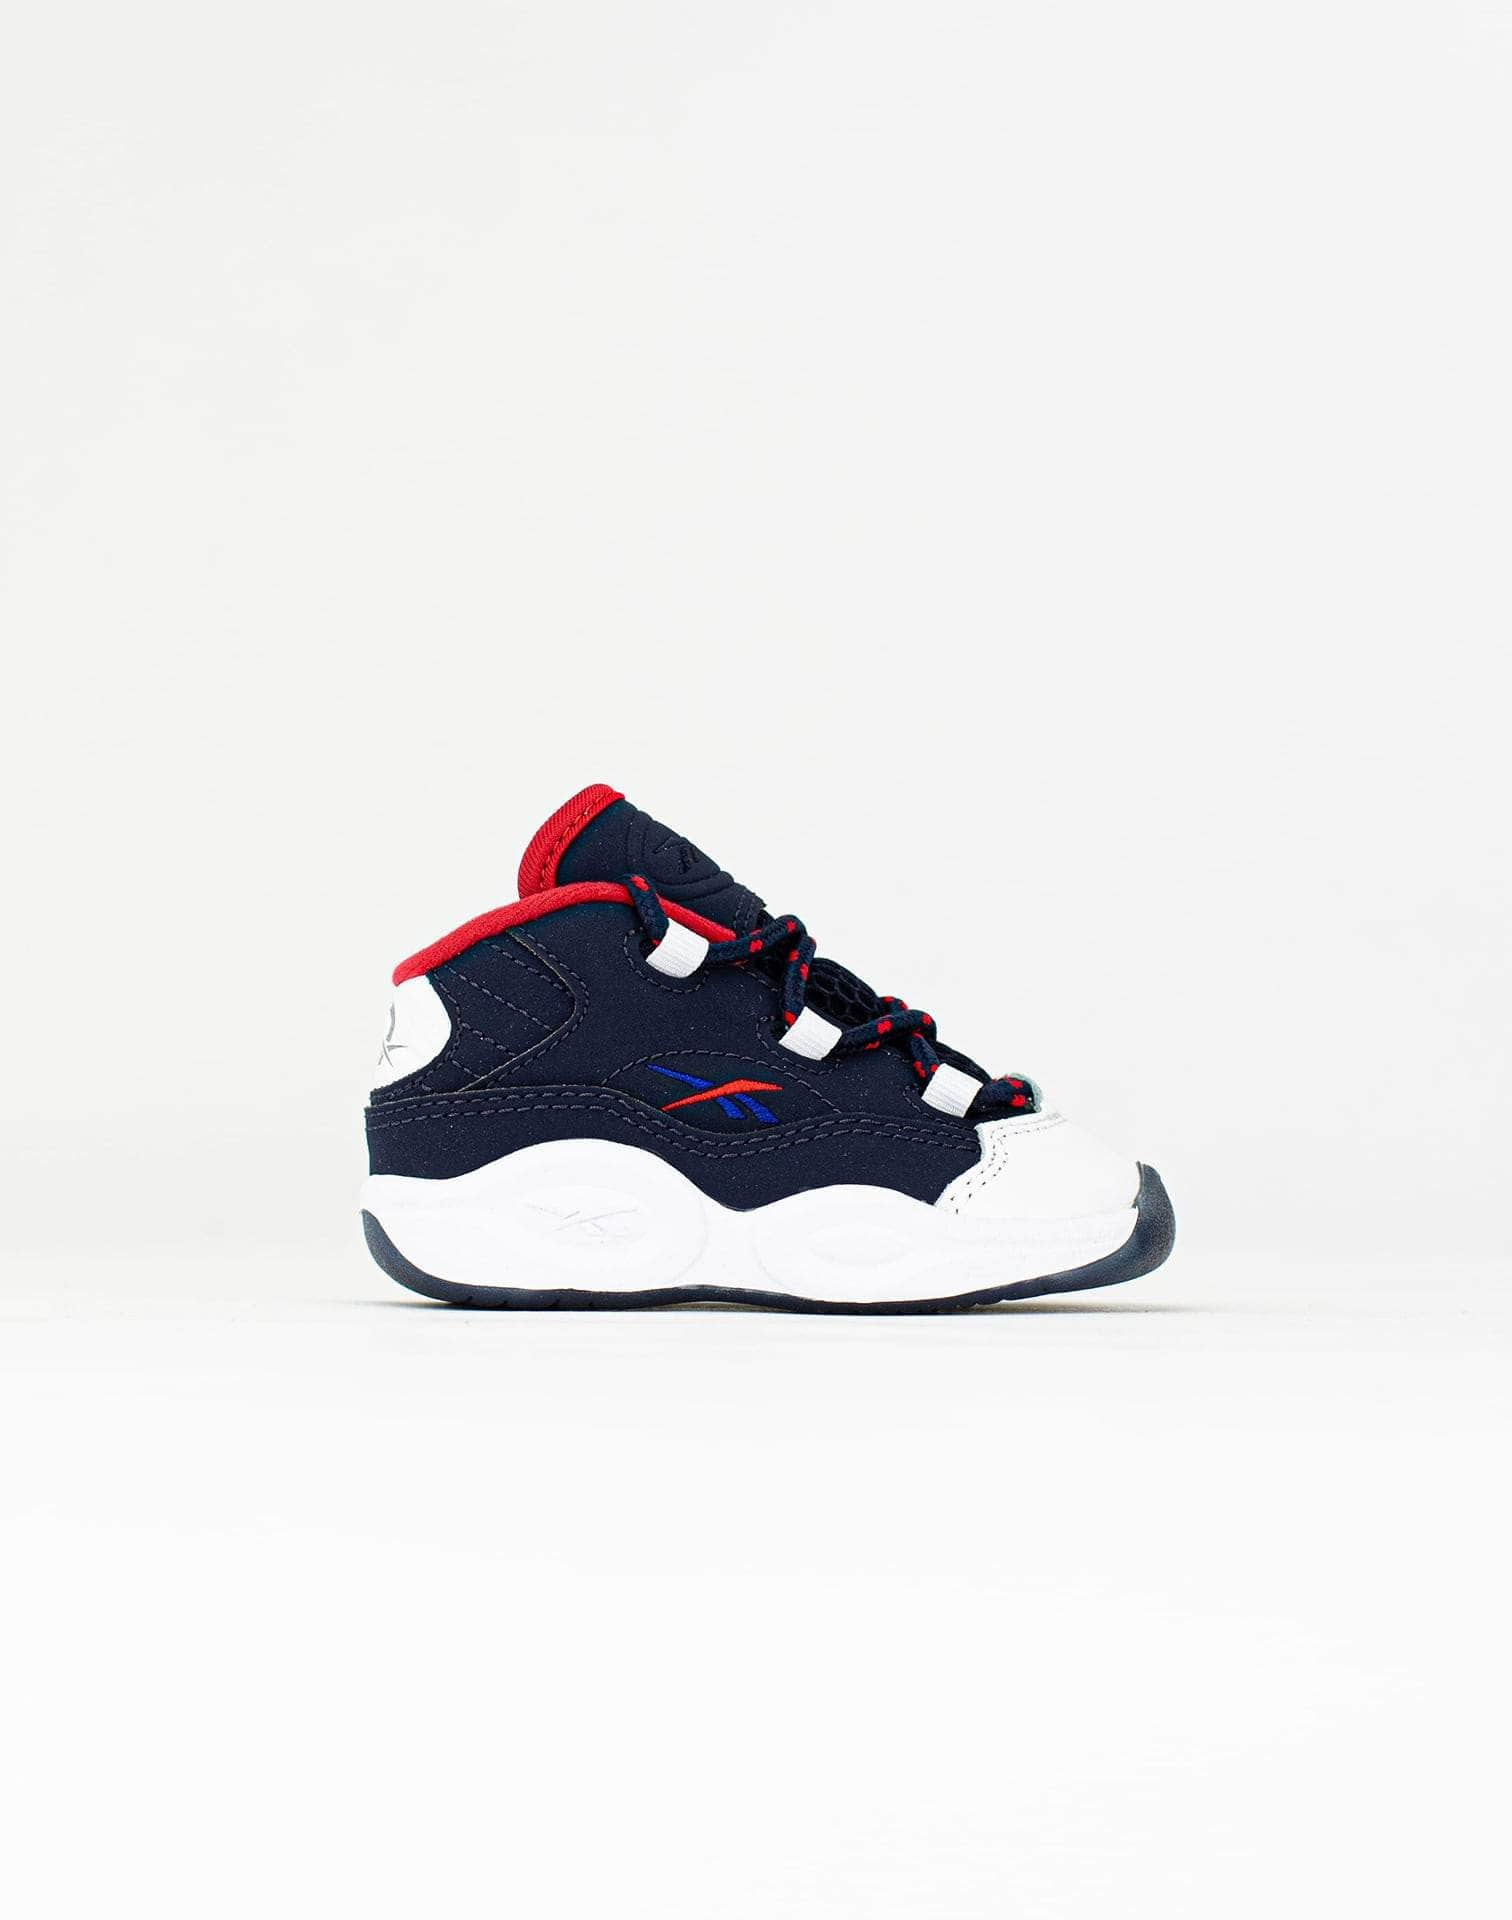 Reebok QUESTIONS MID 'IVERSON 4' TODDLER